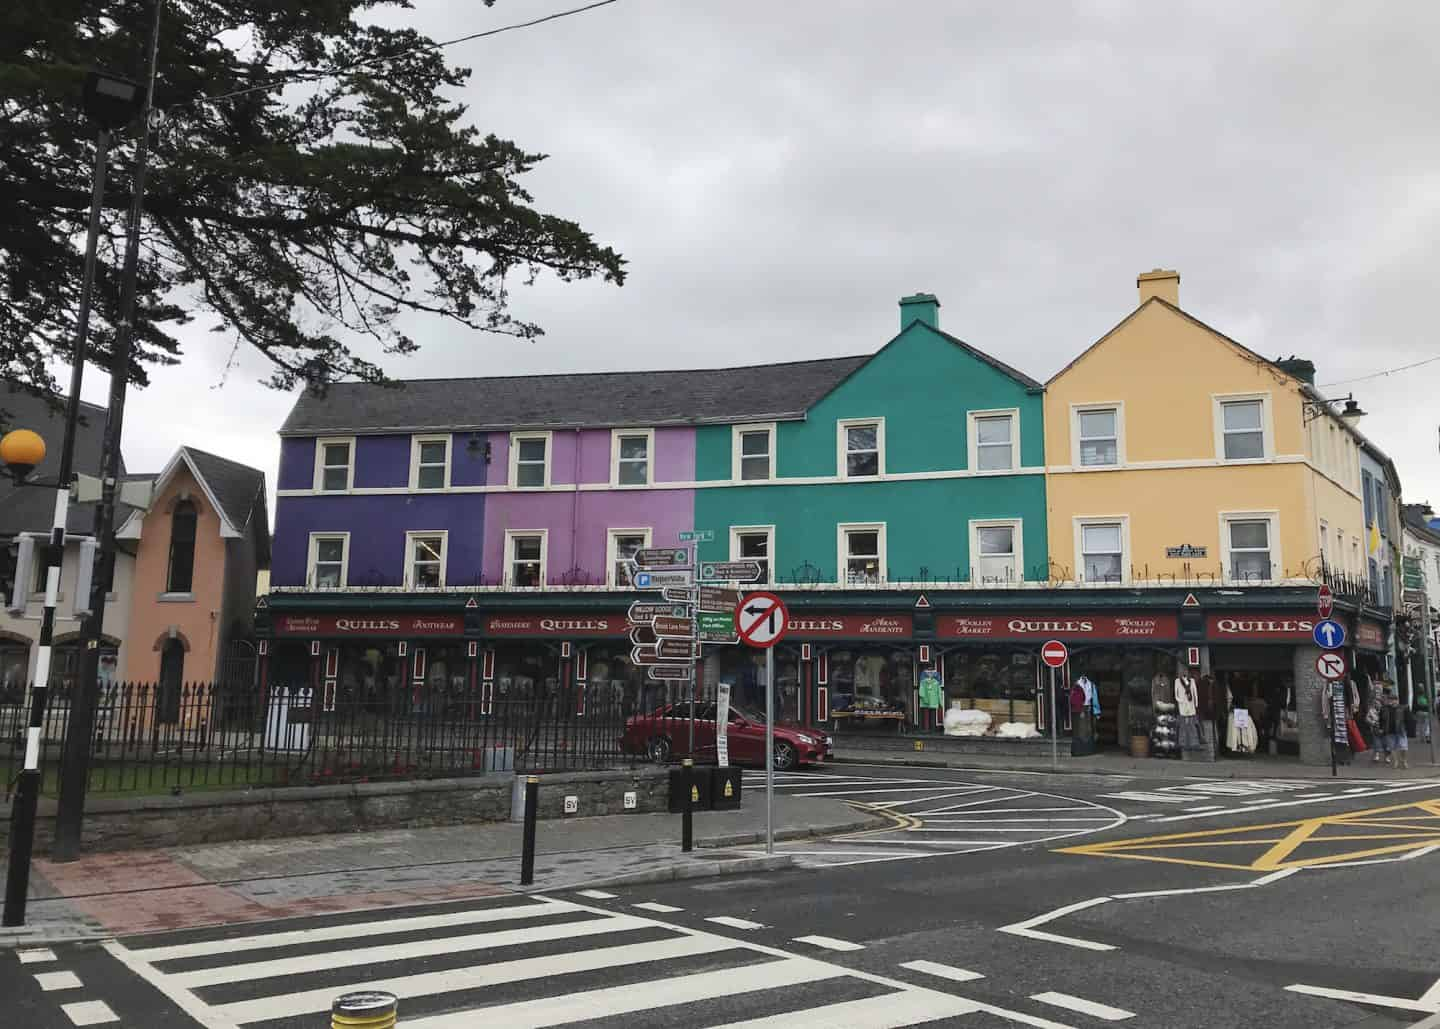 Kenmare is an adorable and colourful small town in Ireland, and definitely worth adding to your road trip itinerary